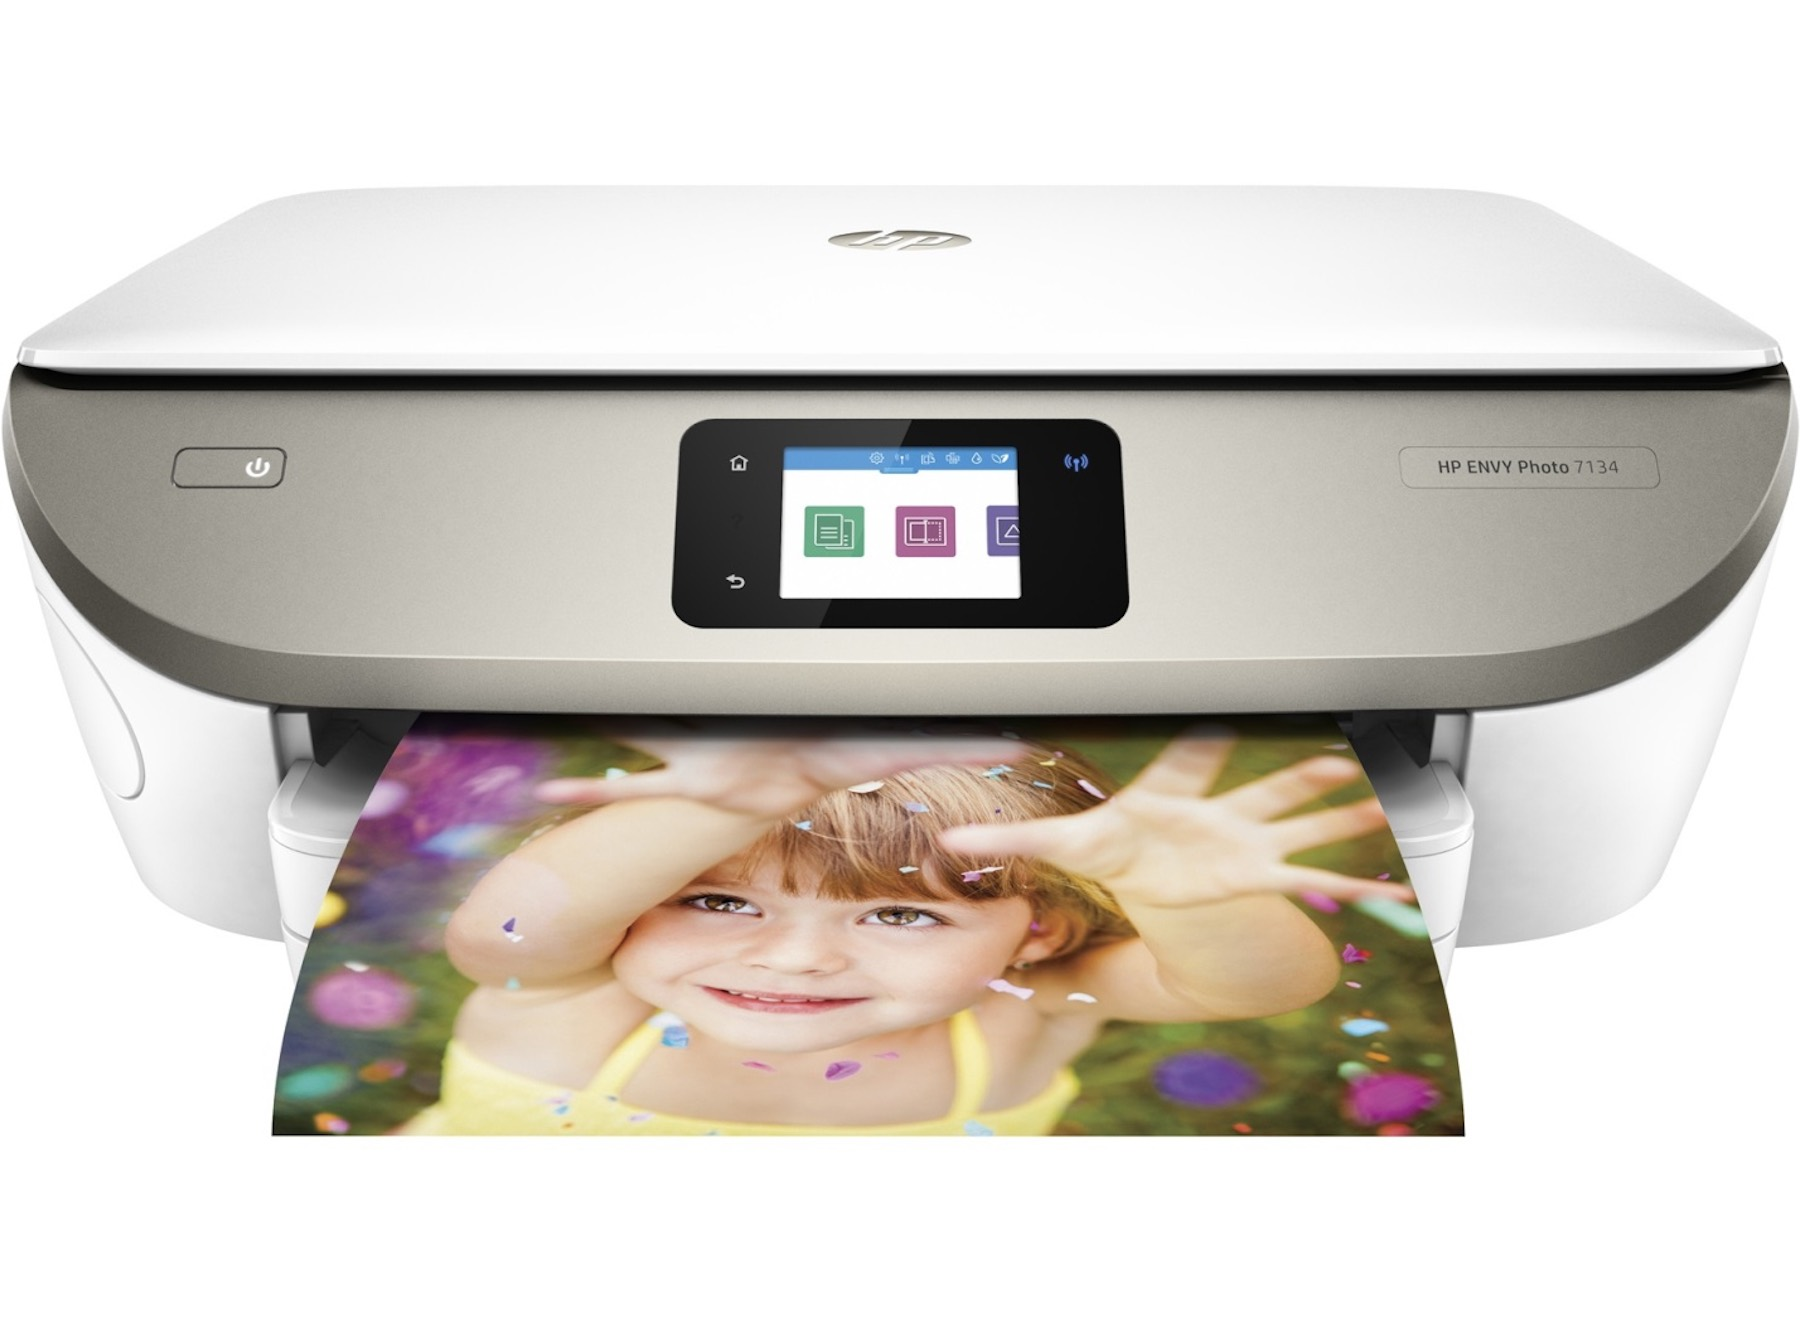 Guide for the Hp Envy Printer Setup